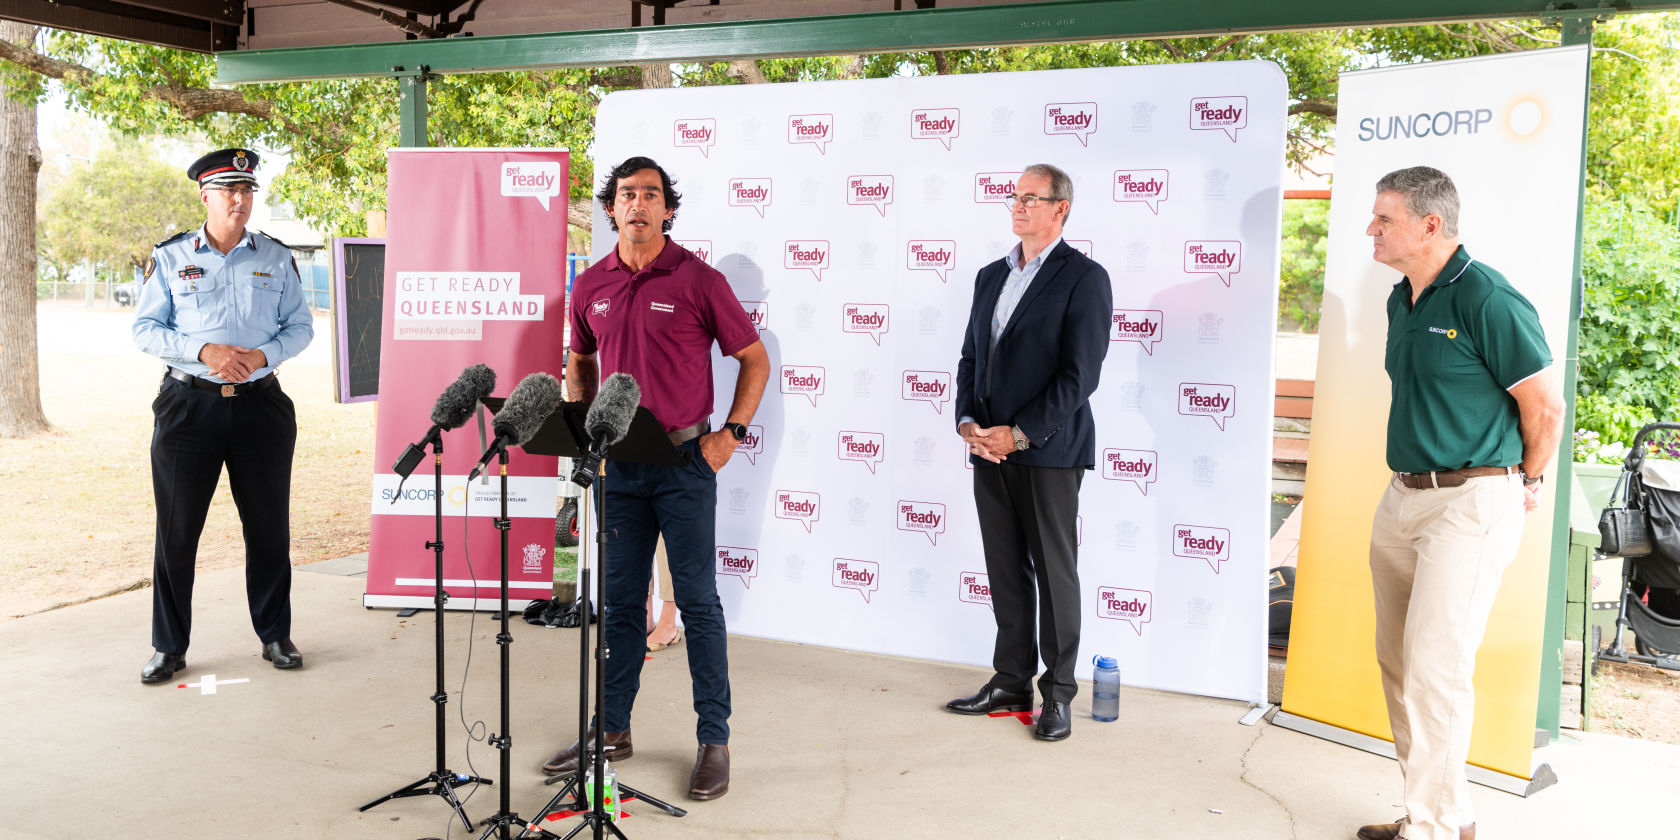 Queenslanders encouraged to get ready with the Suncorp Storm Score